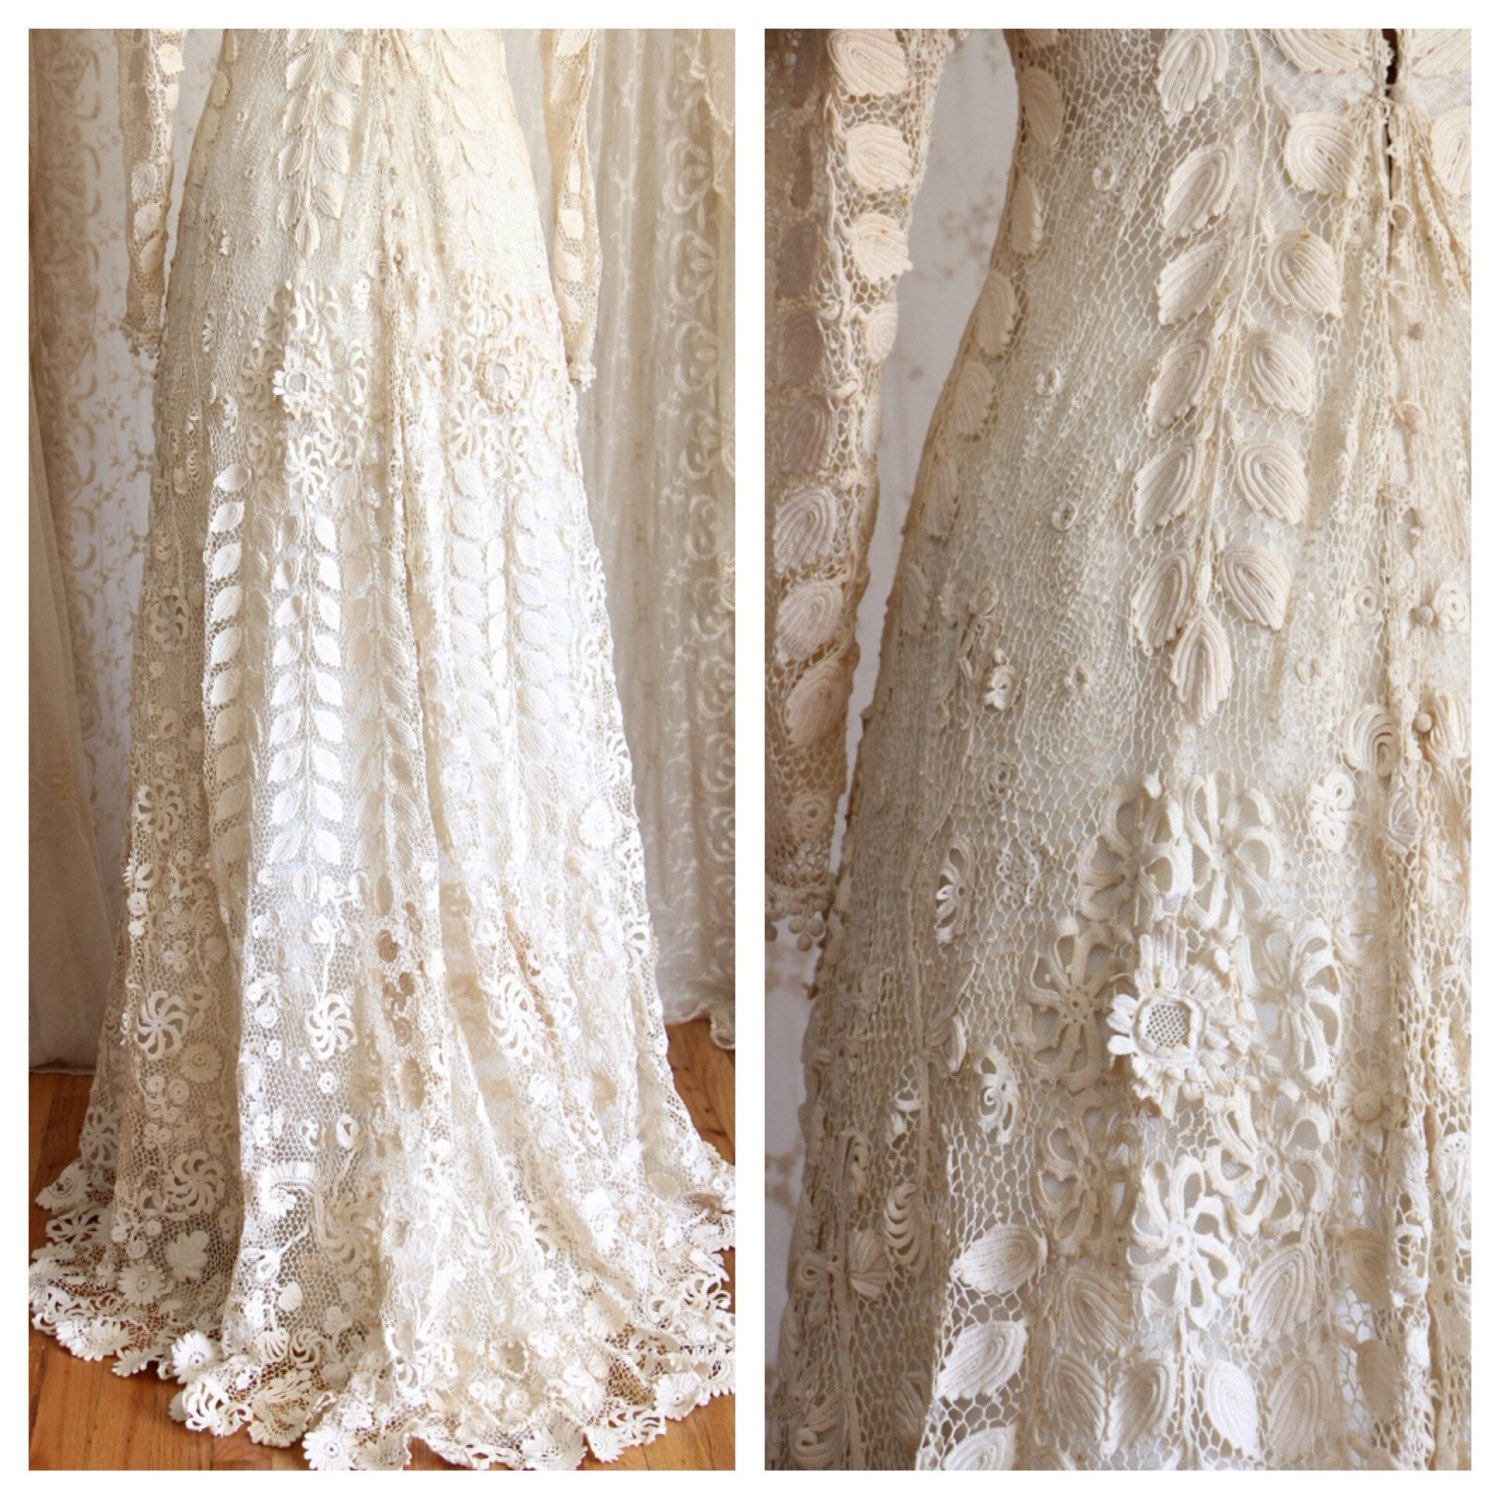 VICTORIAN IRISH CROCHET LACE WEDDING GOWN Exquisite RARE